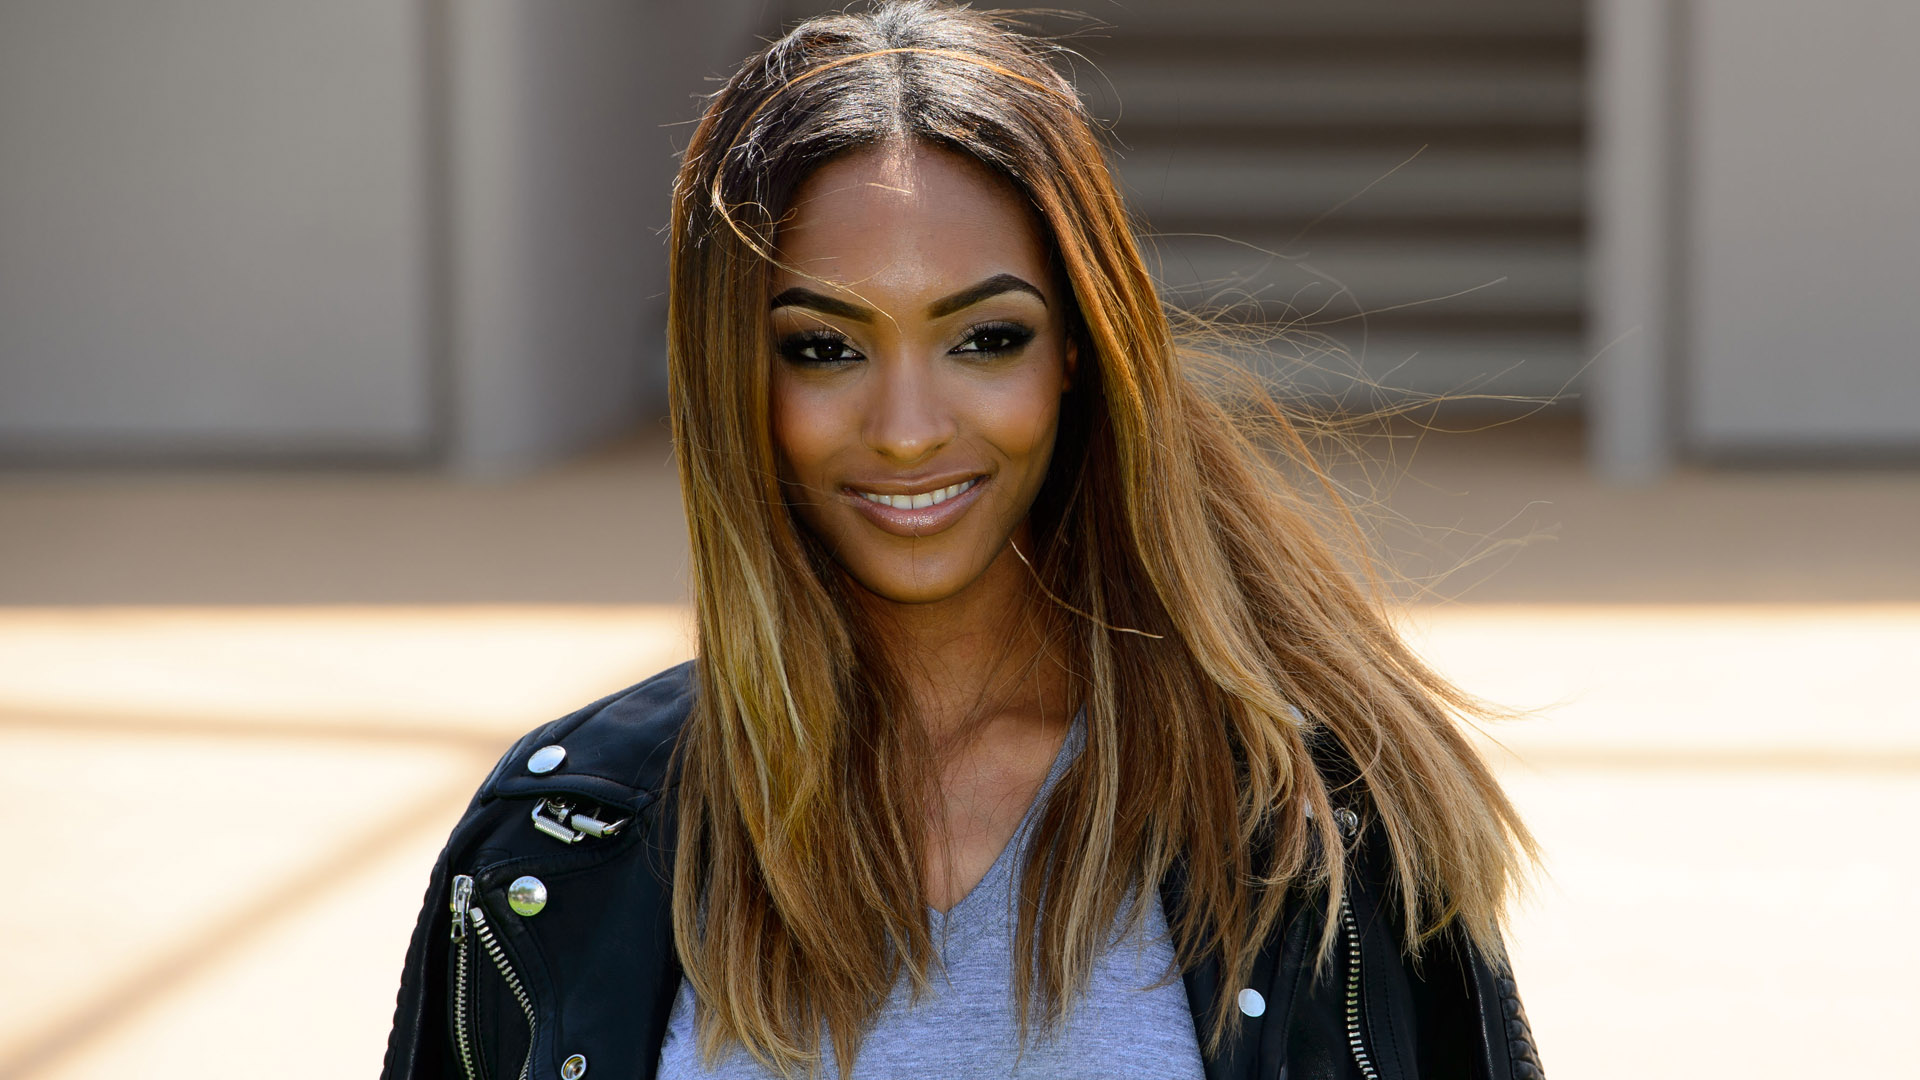 British model Jourdan Dunn arrives for the Burberry Prorsum Menswear collection, during London Collections for Men Spring/Summer 2015 in central London, Tuesday, June 17, 2014. (Photo by Jonathan Short/Invision/AP)